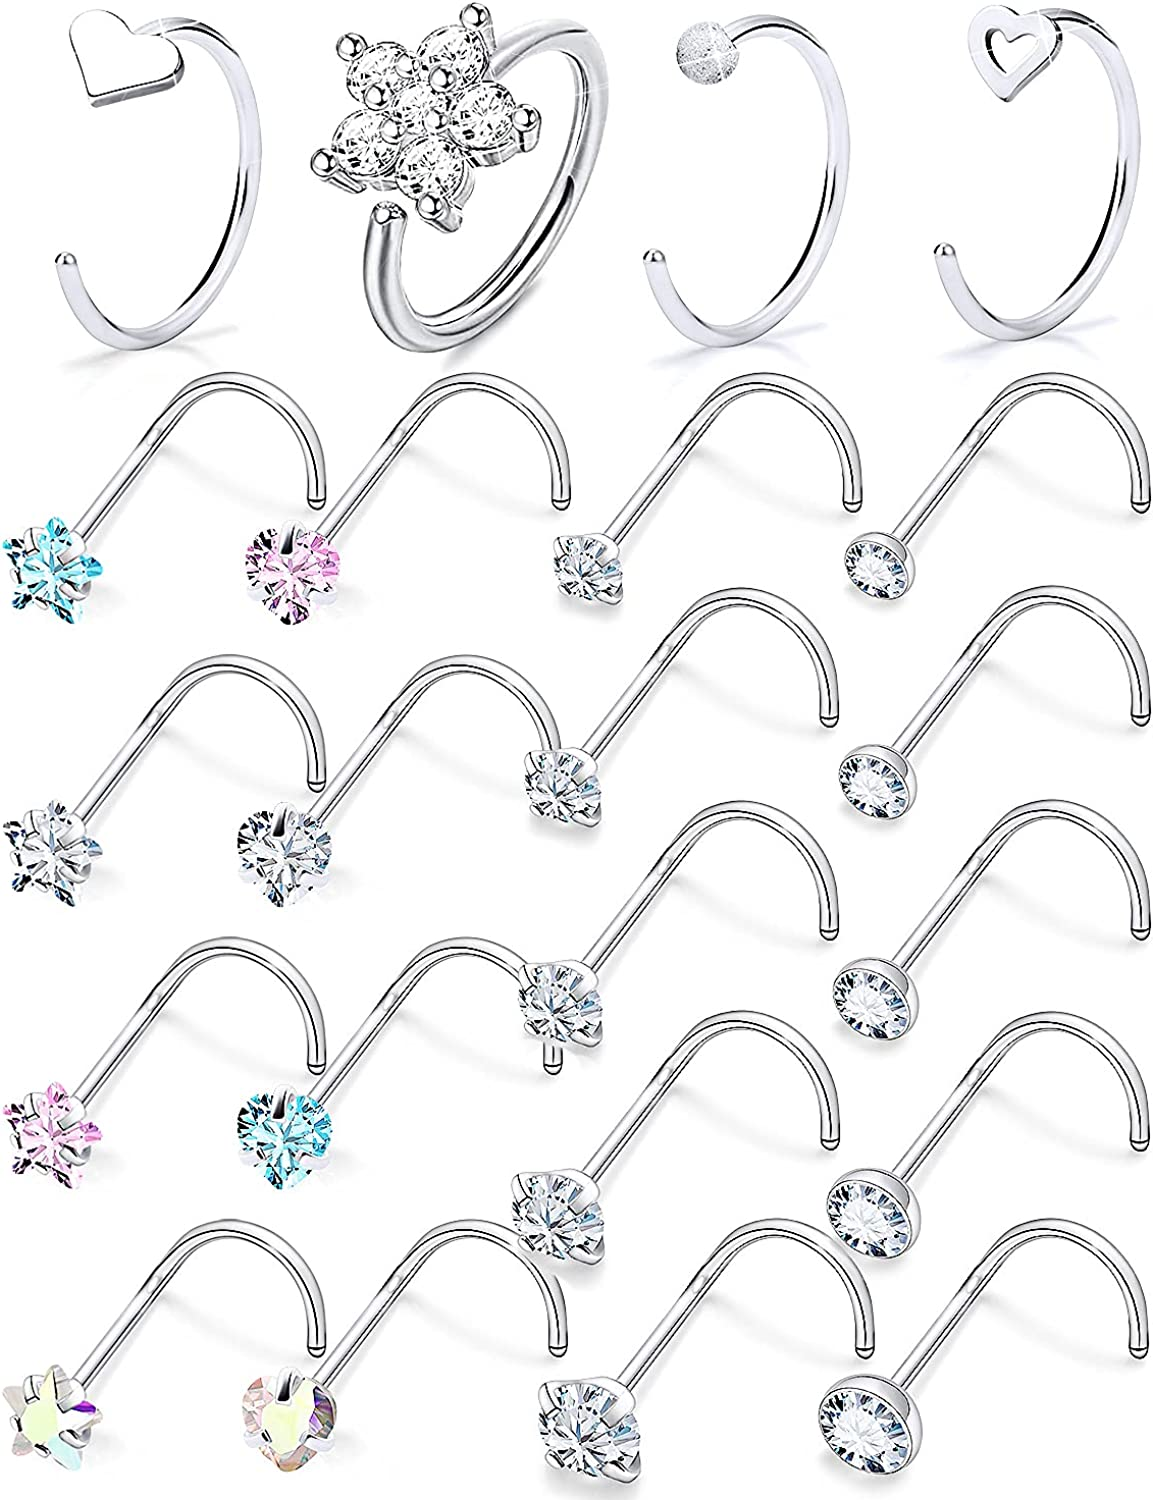 Boernfnso 20G Nose Rings Studs Surgical Stainless Steel Nose Hoo